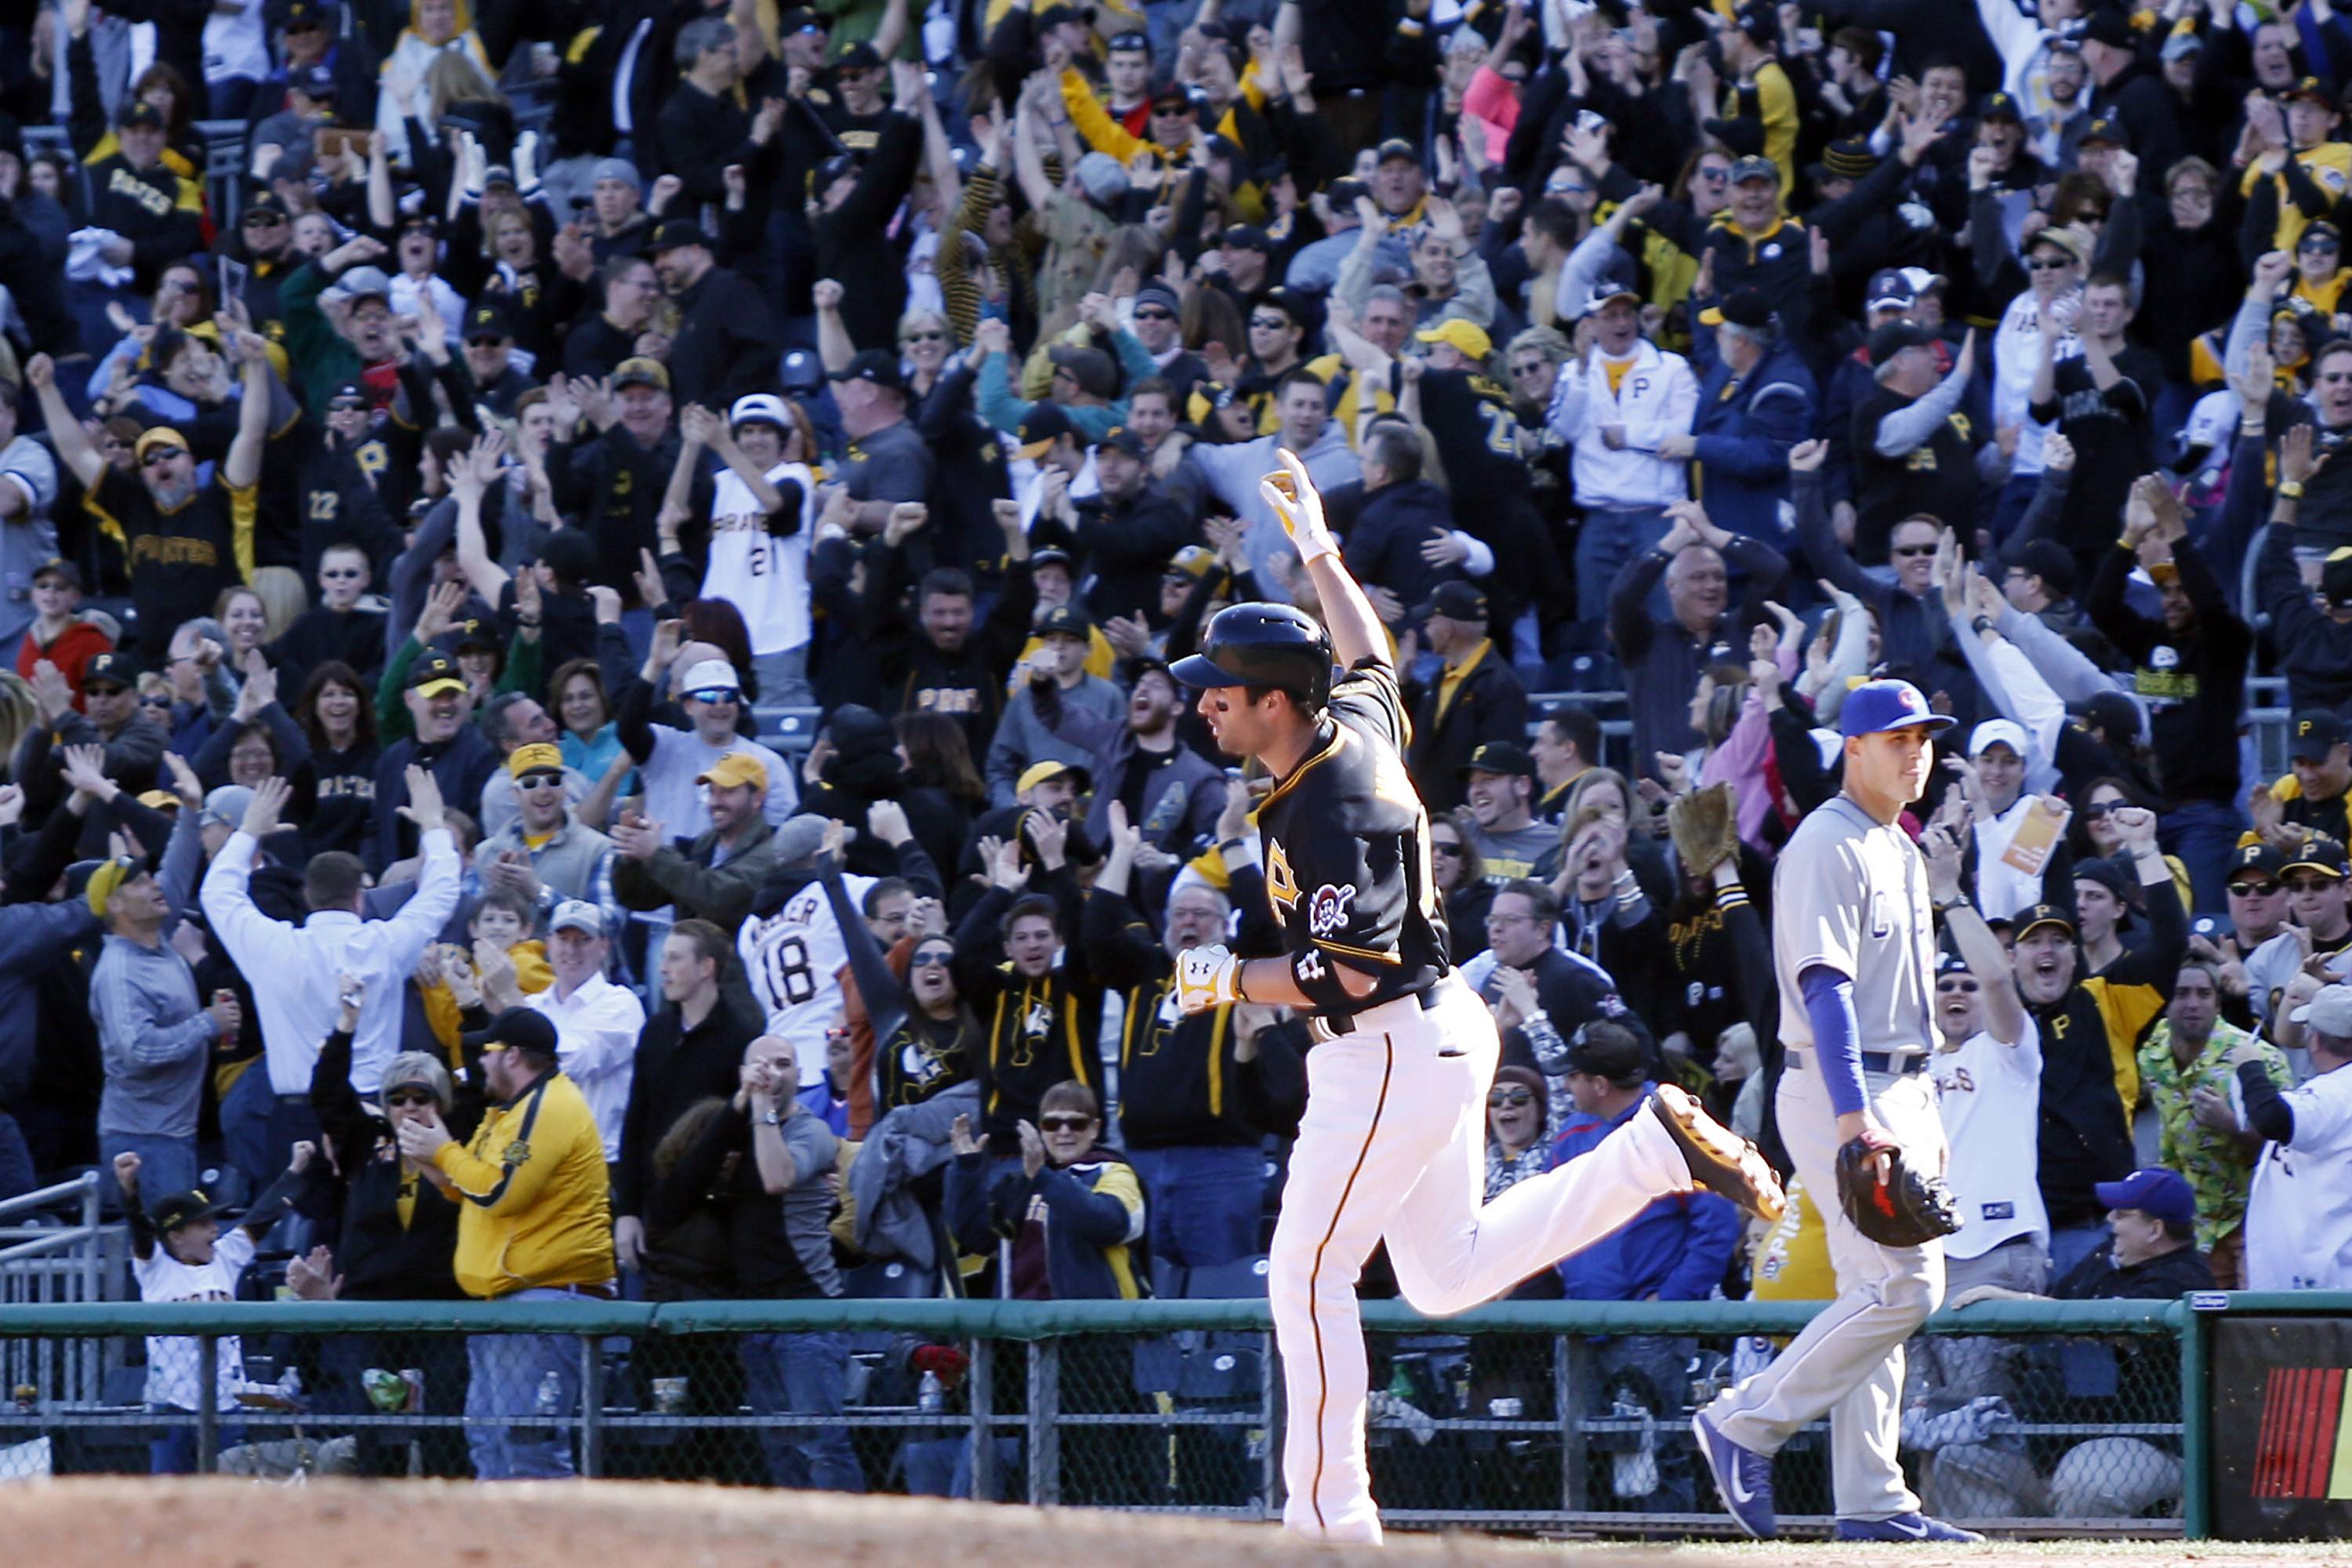 Fans cheer as Pittsburgh Pirates' Neil Walker (18) pumps his fist as he rounds the bases after hitting the game-winning home run while Chicago Cubs first baseman Anthony Rizzo, right, walks off the field in the tenth inning.